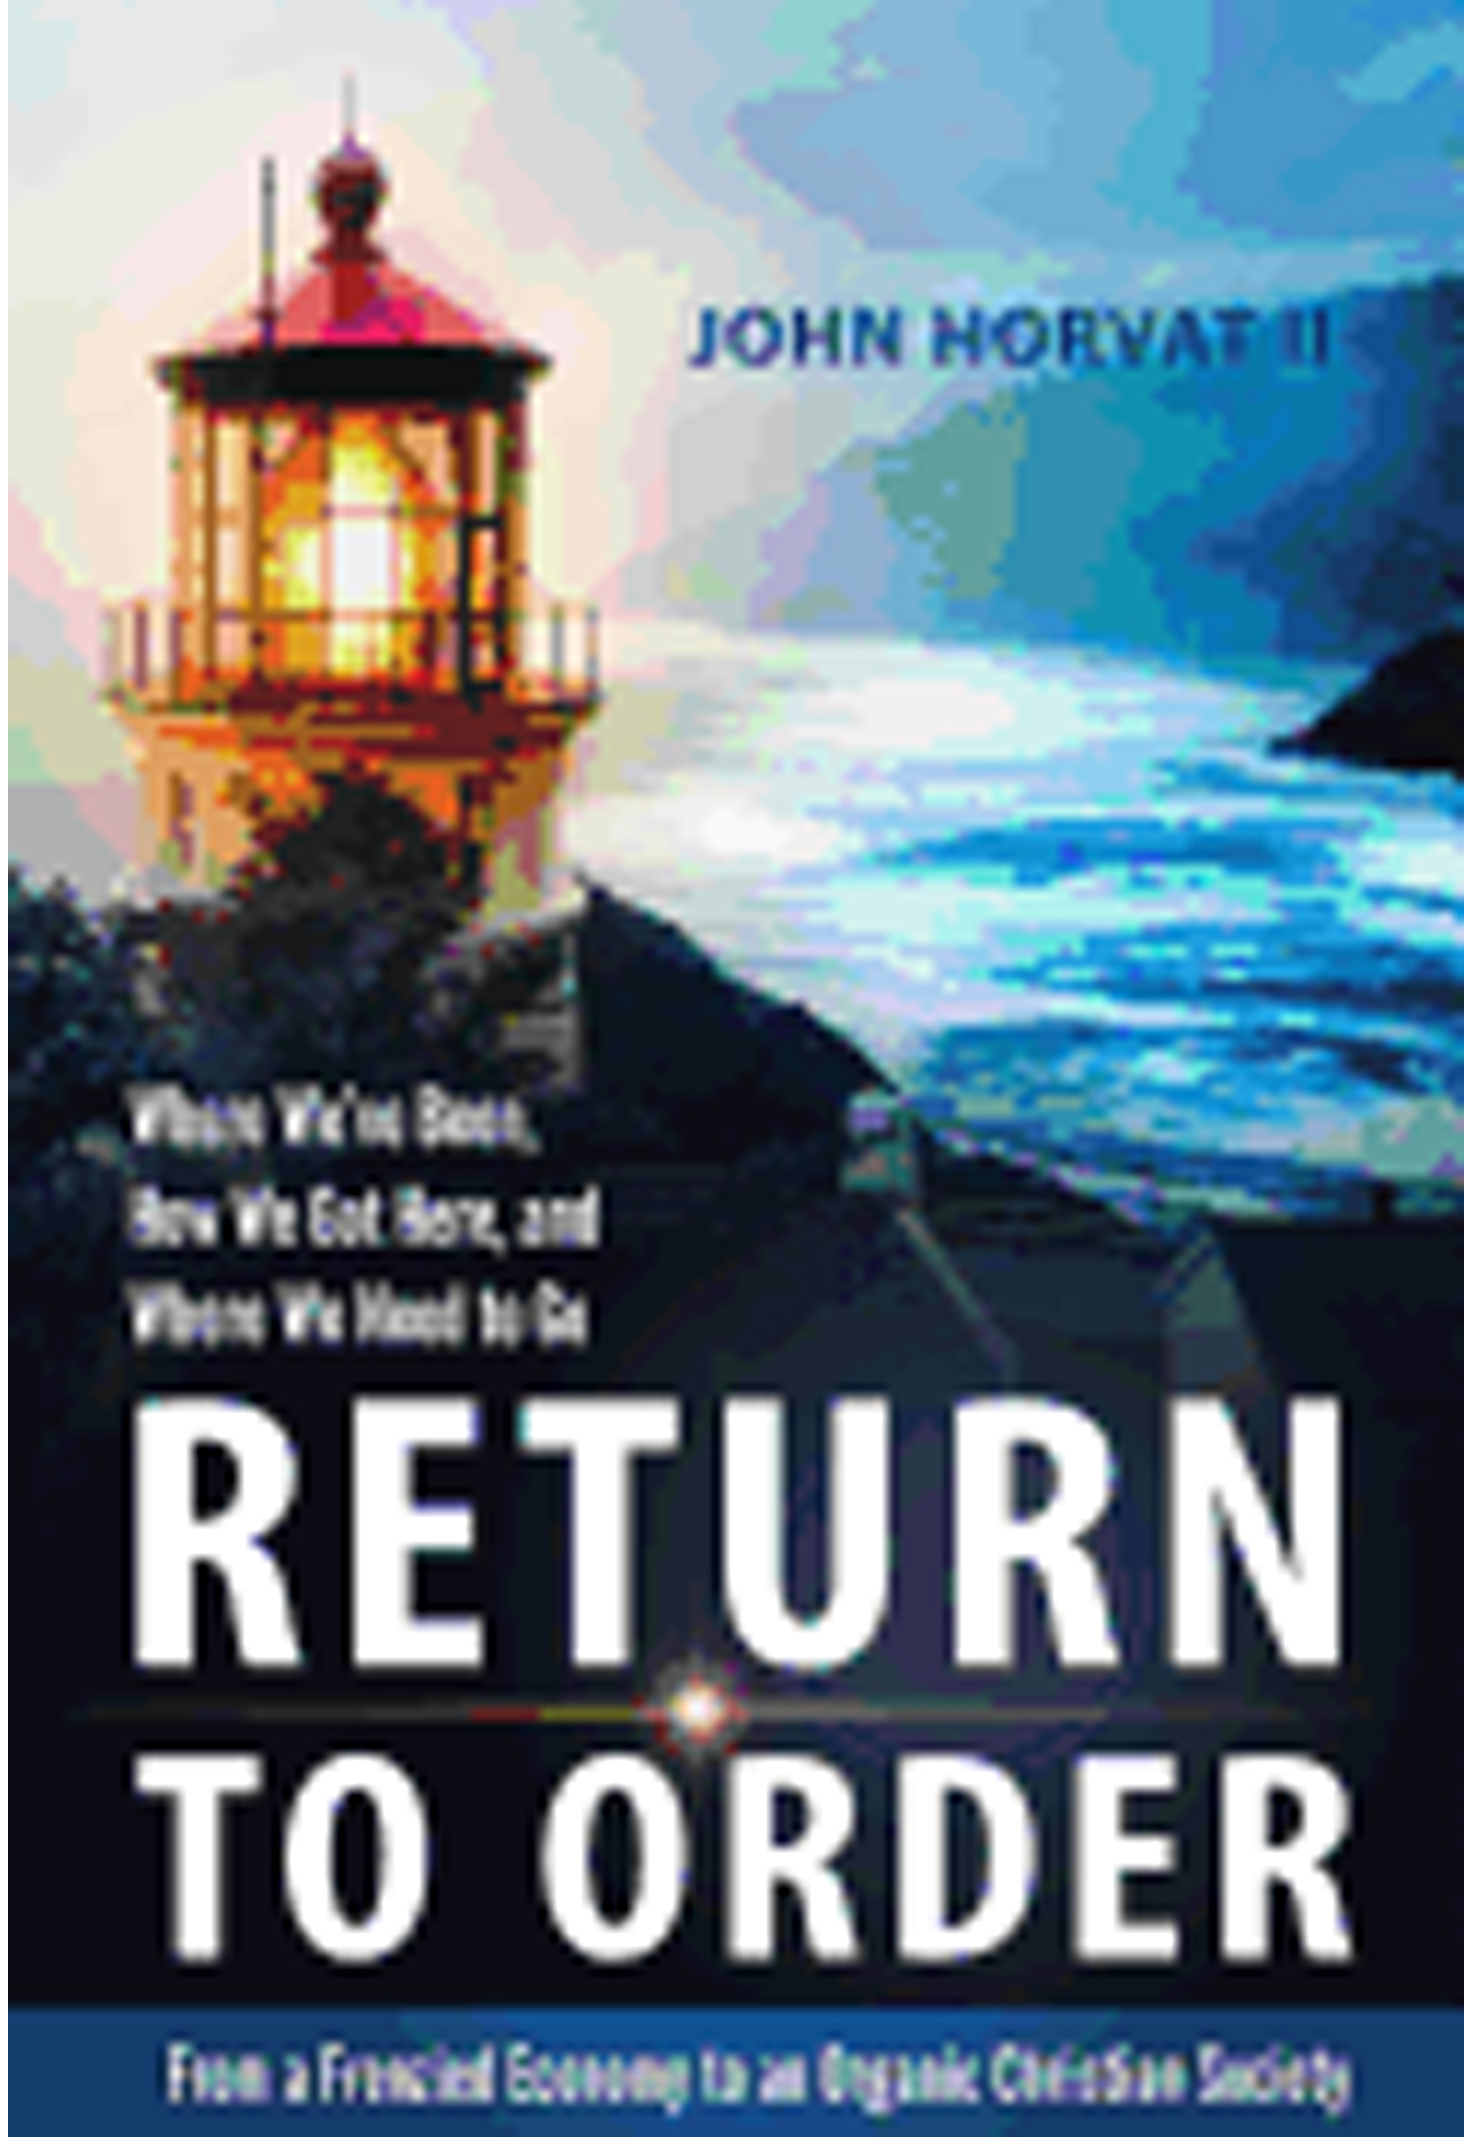 Return To Order by John Horvat II 108-9780988214804